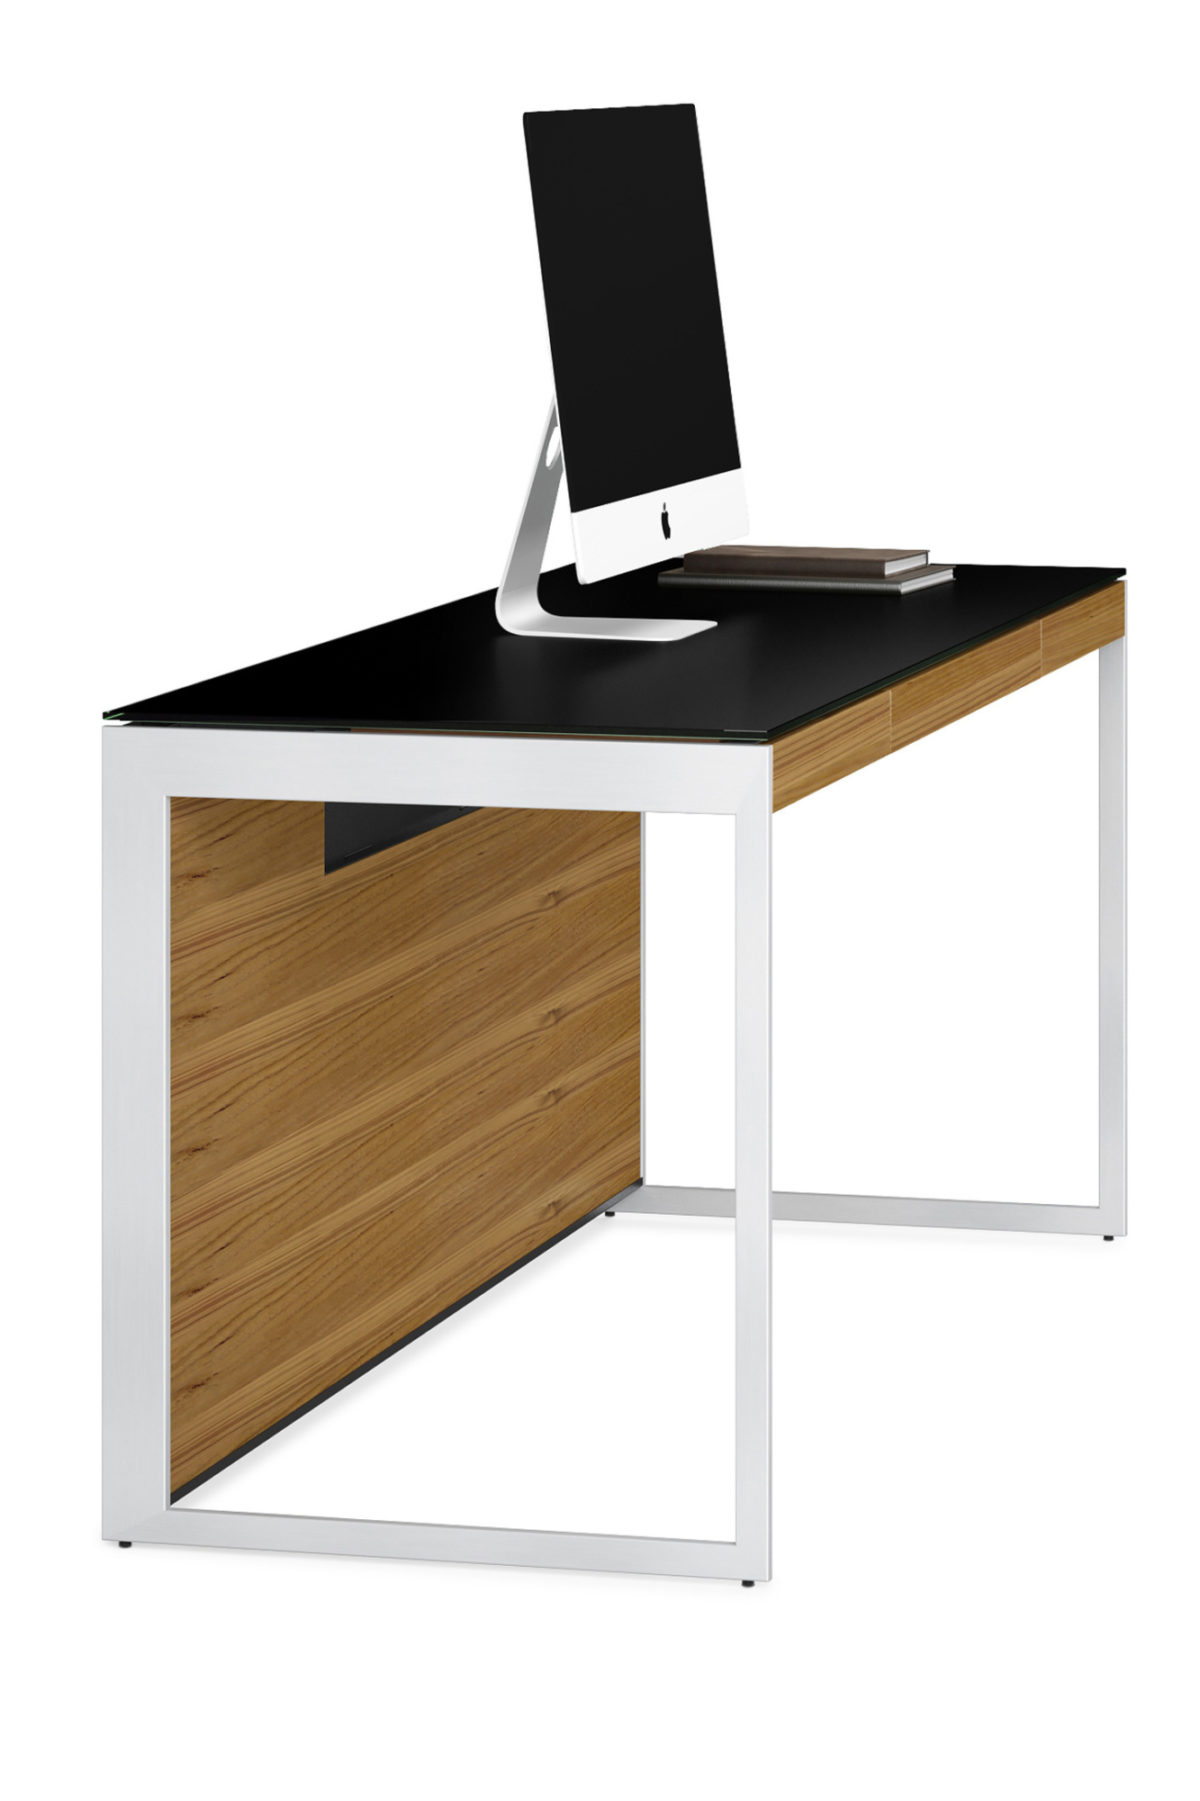 Select from two steel frames for the Sequel 6101 office desk—Satin Nickel and Black powder coat—and three wood finishes to create the Sequel Office that is perfect for you.